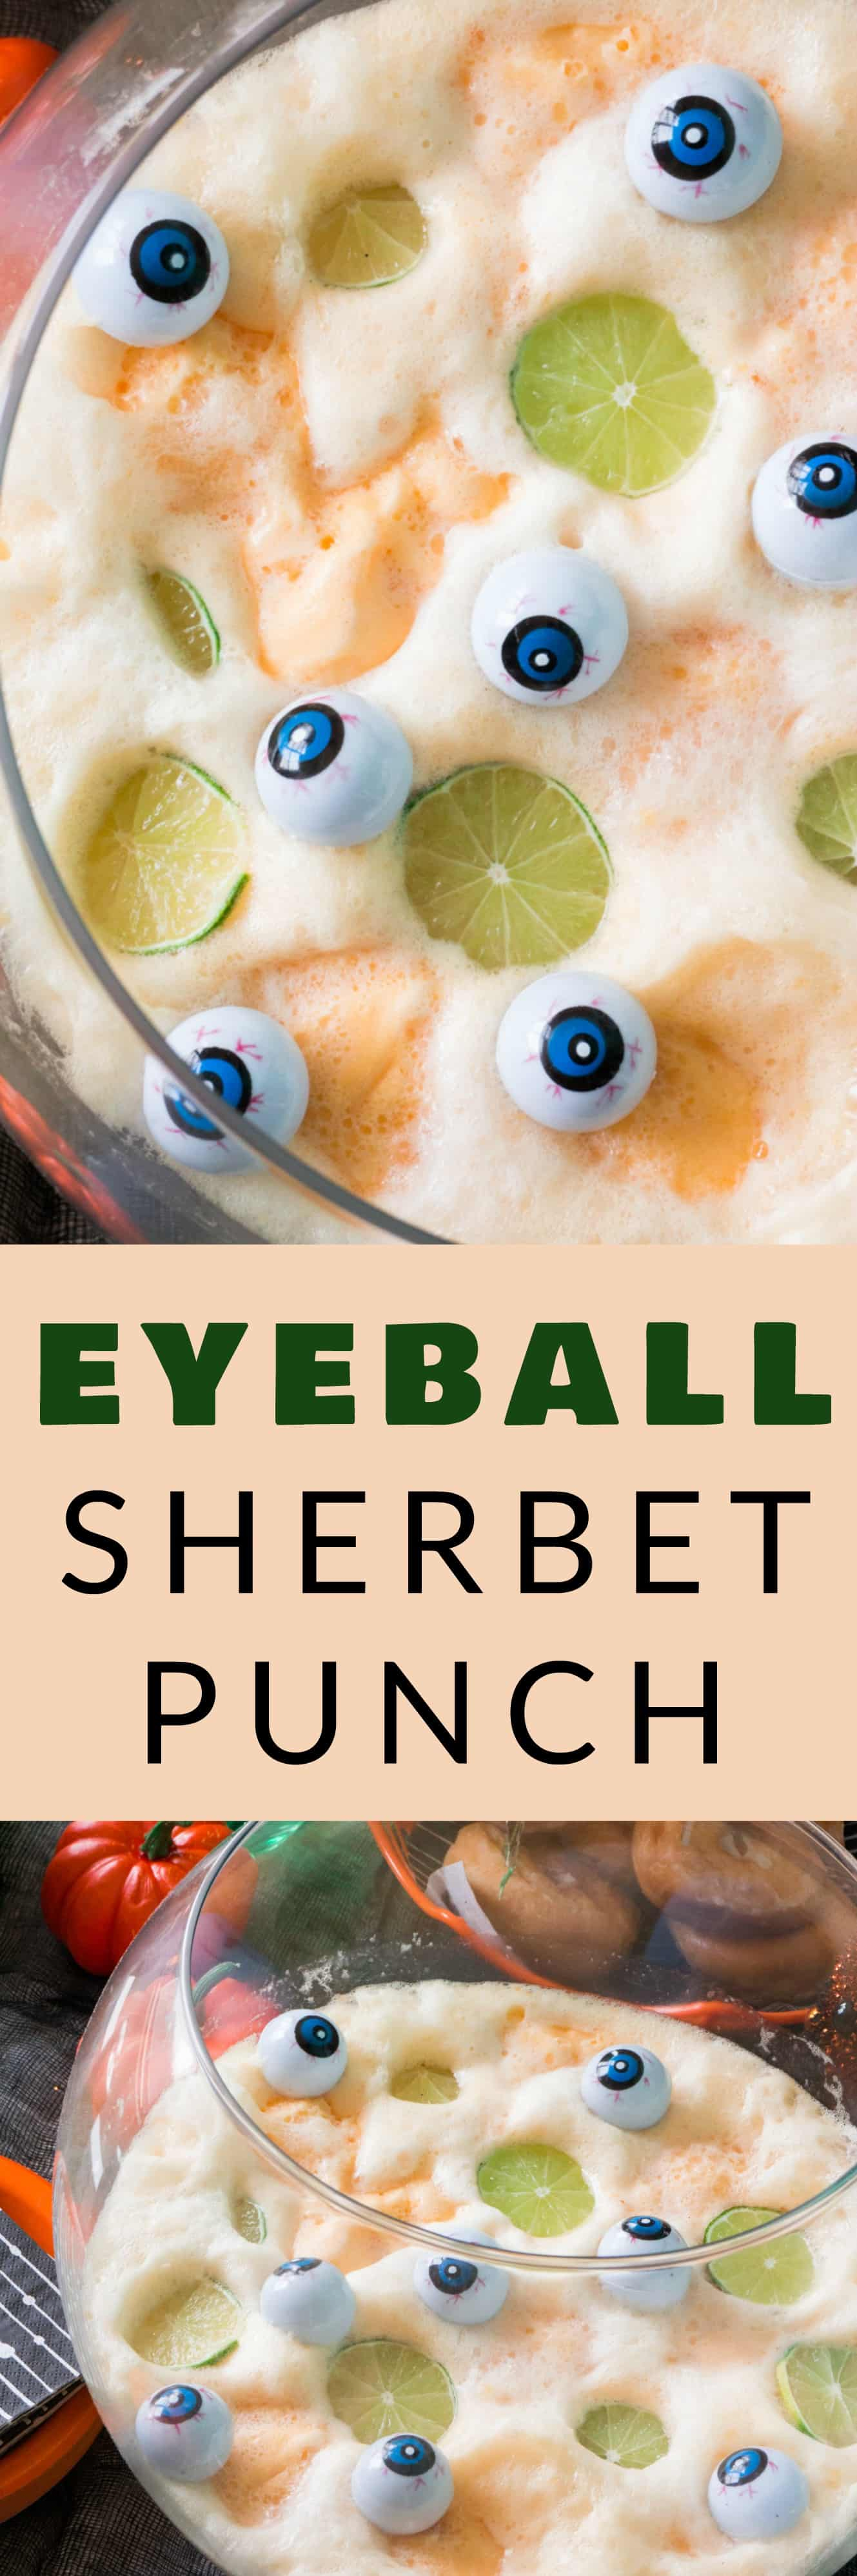 Halloween Punch with funny eyeballs is made so easily with just orange sherbet and 7UP. This spooky drink recipe that kids and adults will love is the perfect addition to Halloween parties! Non-alcoholic.